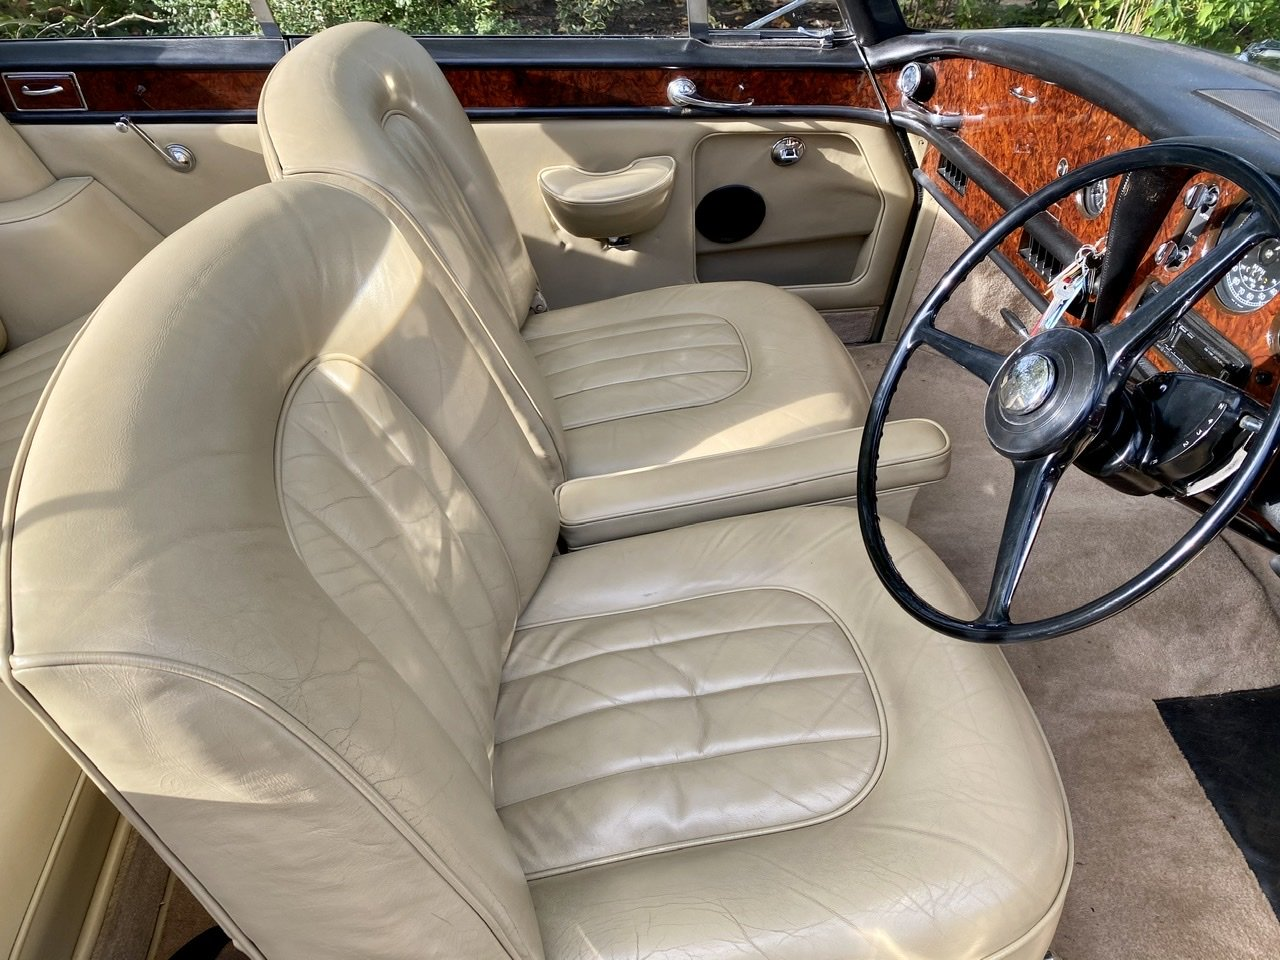 1964 Bentley S3 Continental Drop Head Coupe For Sale (picture 12 of 24)